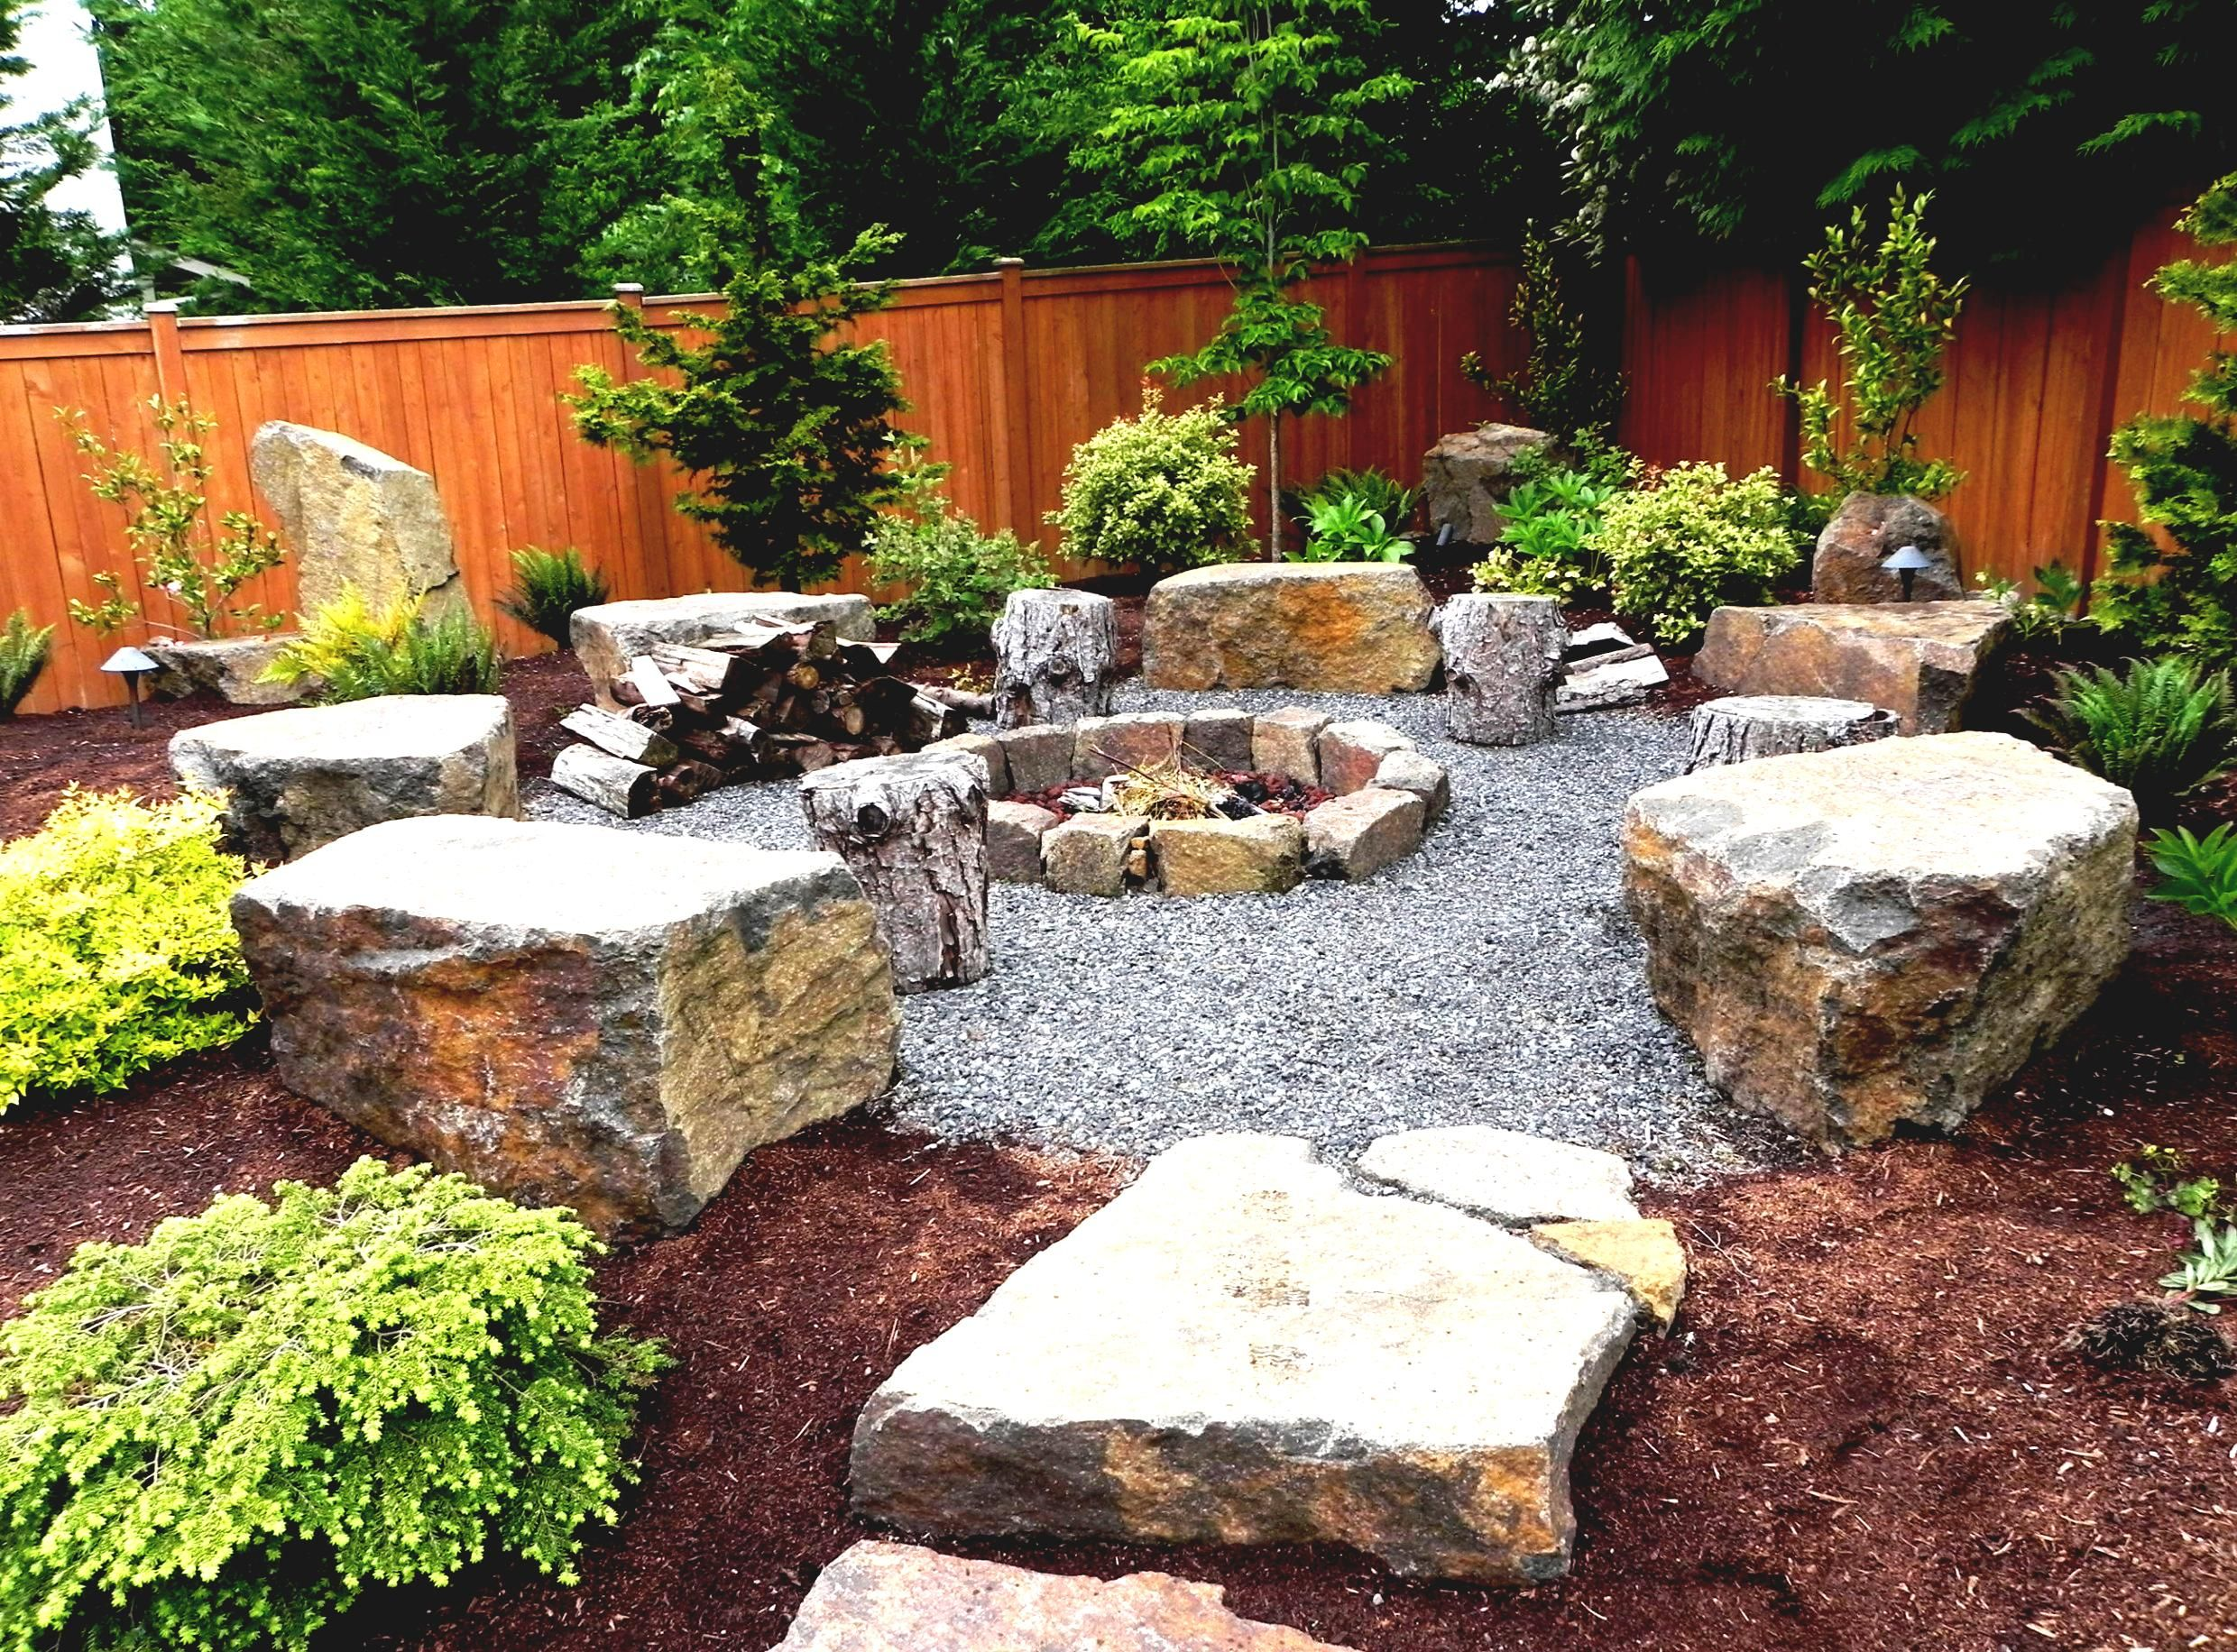 Rustic Stone Seating Blocks Fire Pit Landscaping Backyard Landscaping Designs Backyard Fire